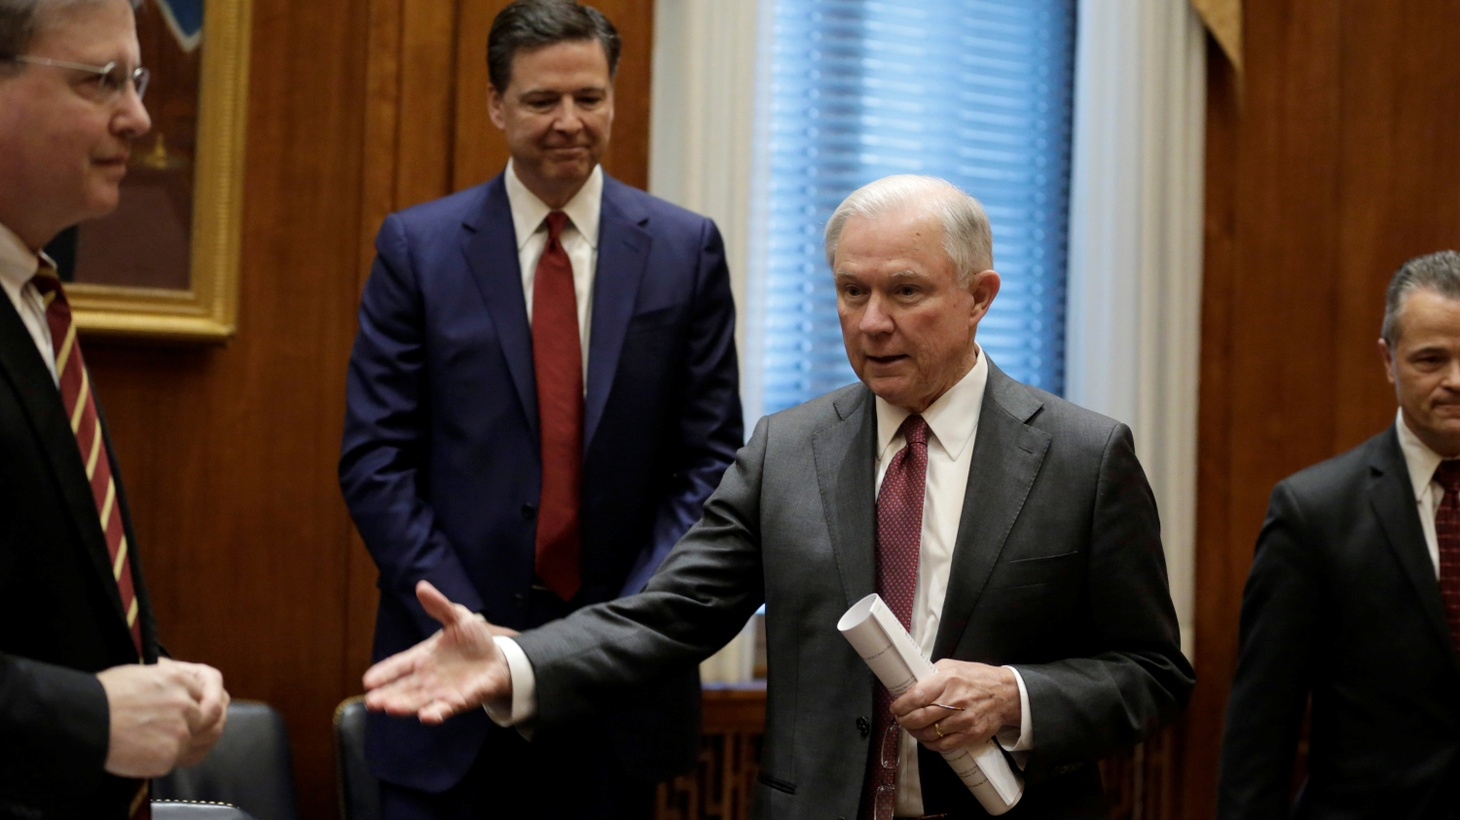 Alabama's Republican Senator Jeff Sessions has been confirmed as Attorney General — one of the most important and powerful jobs in the Trump cabinet. But Sessions' ideological affinity with the new President may give him more influence than just the nation's top law enforcement officer.